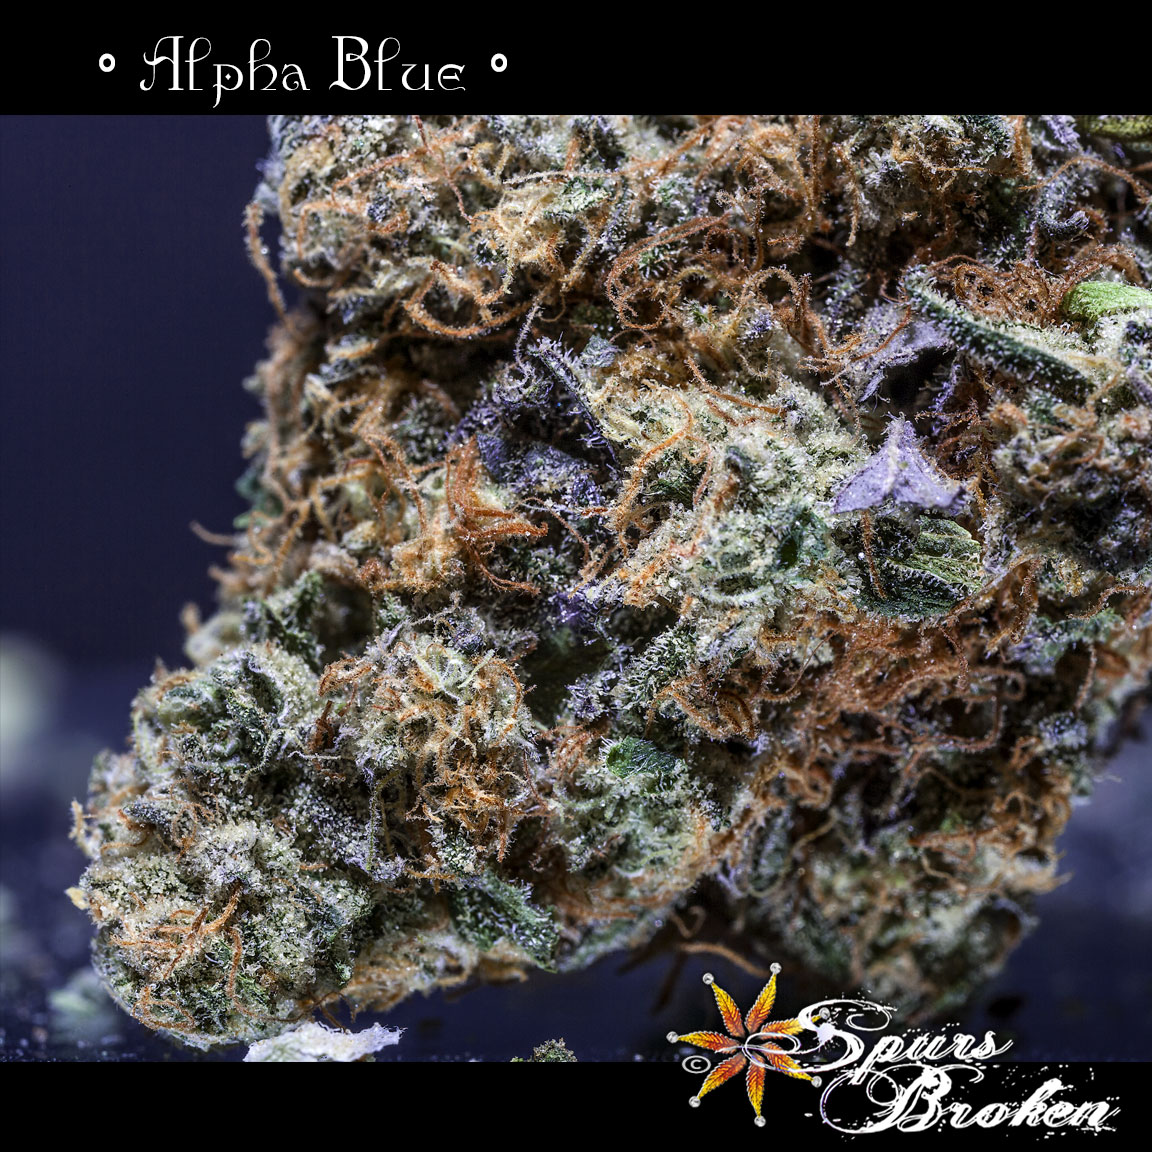 Alpha Blue- Cannabis Macro Photography by Spurs Broken (Robert R. Sanders)